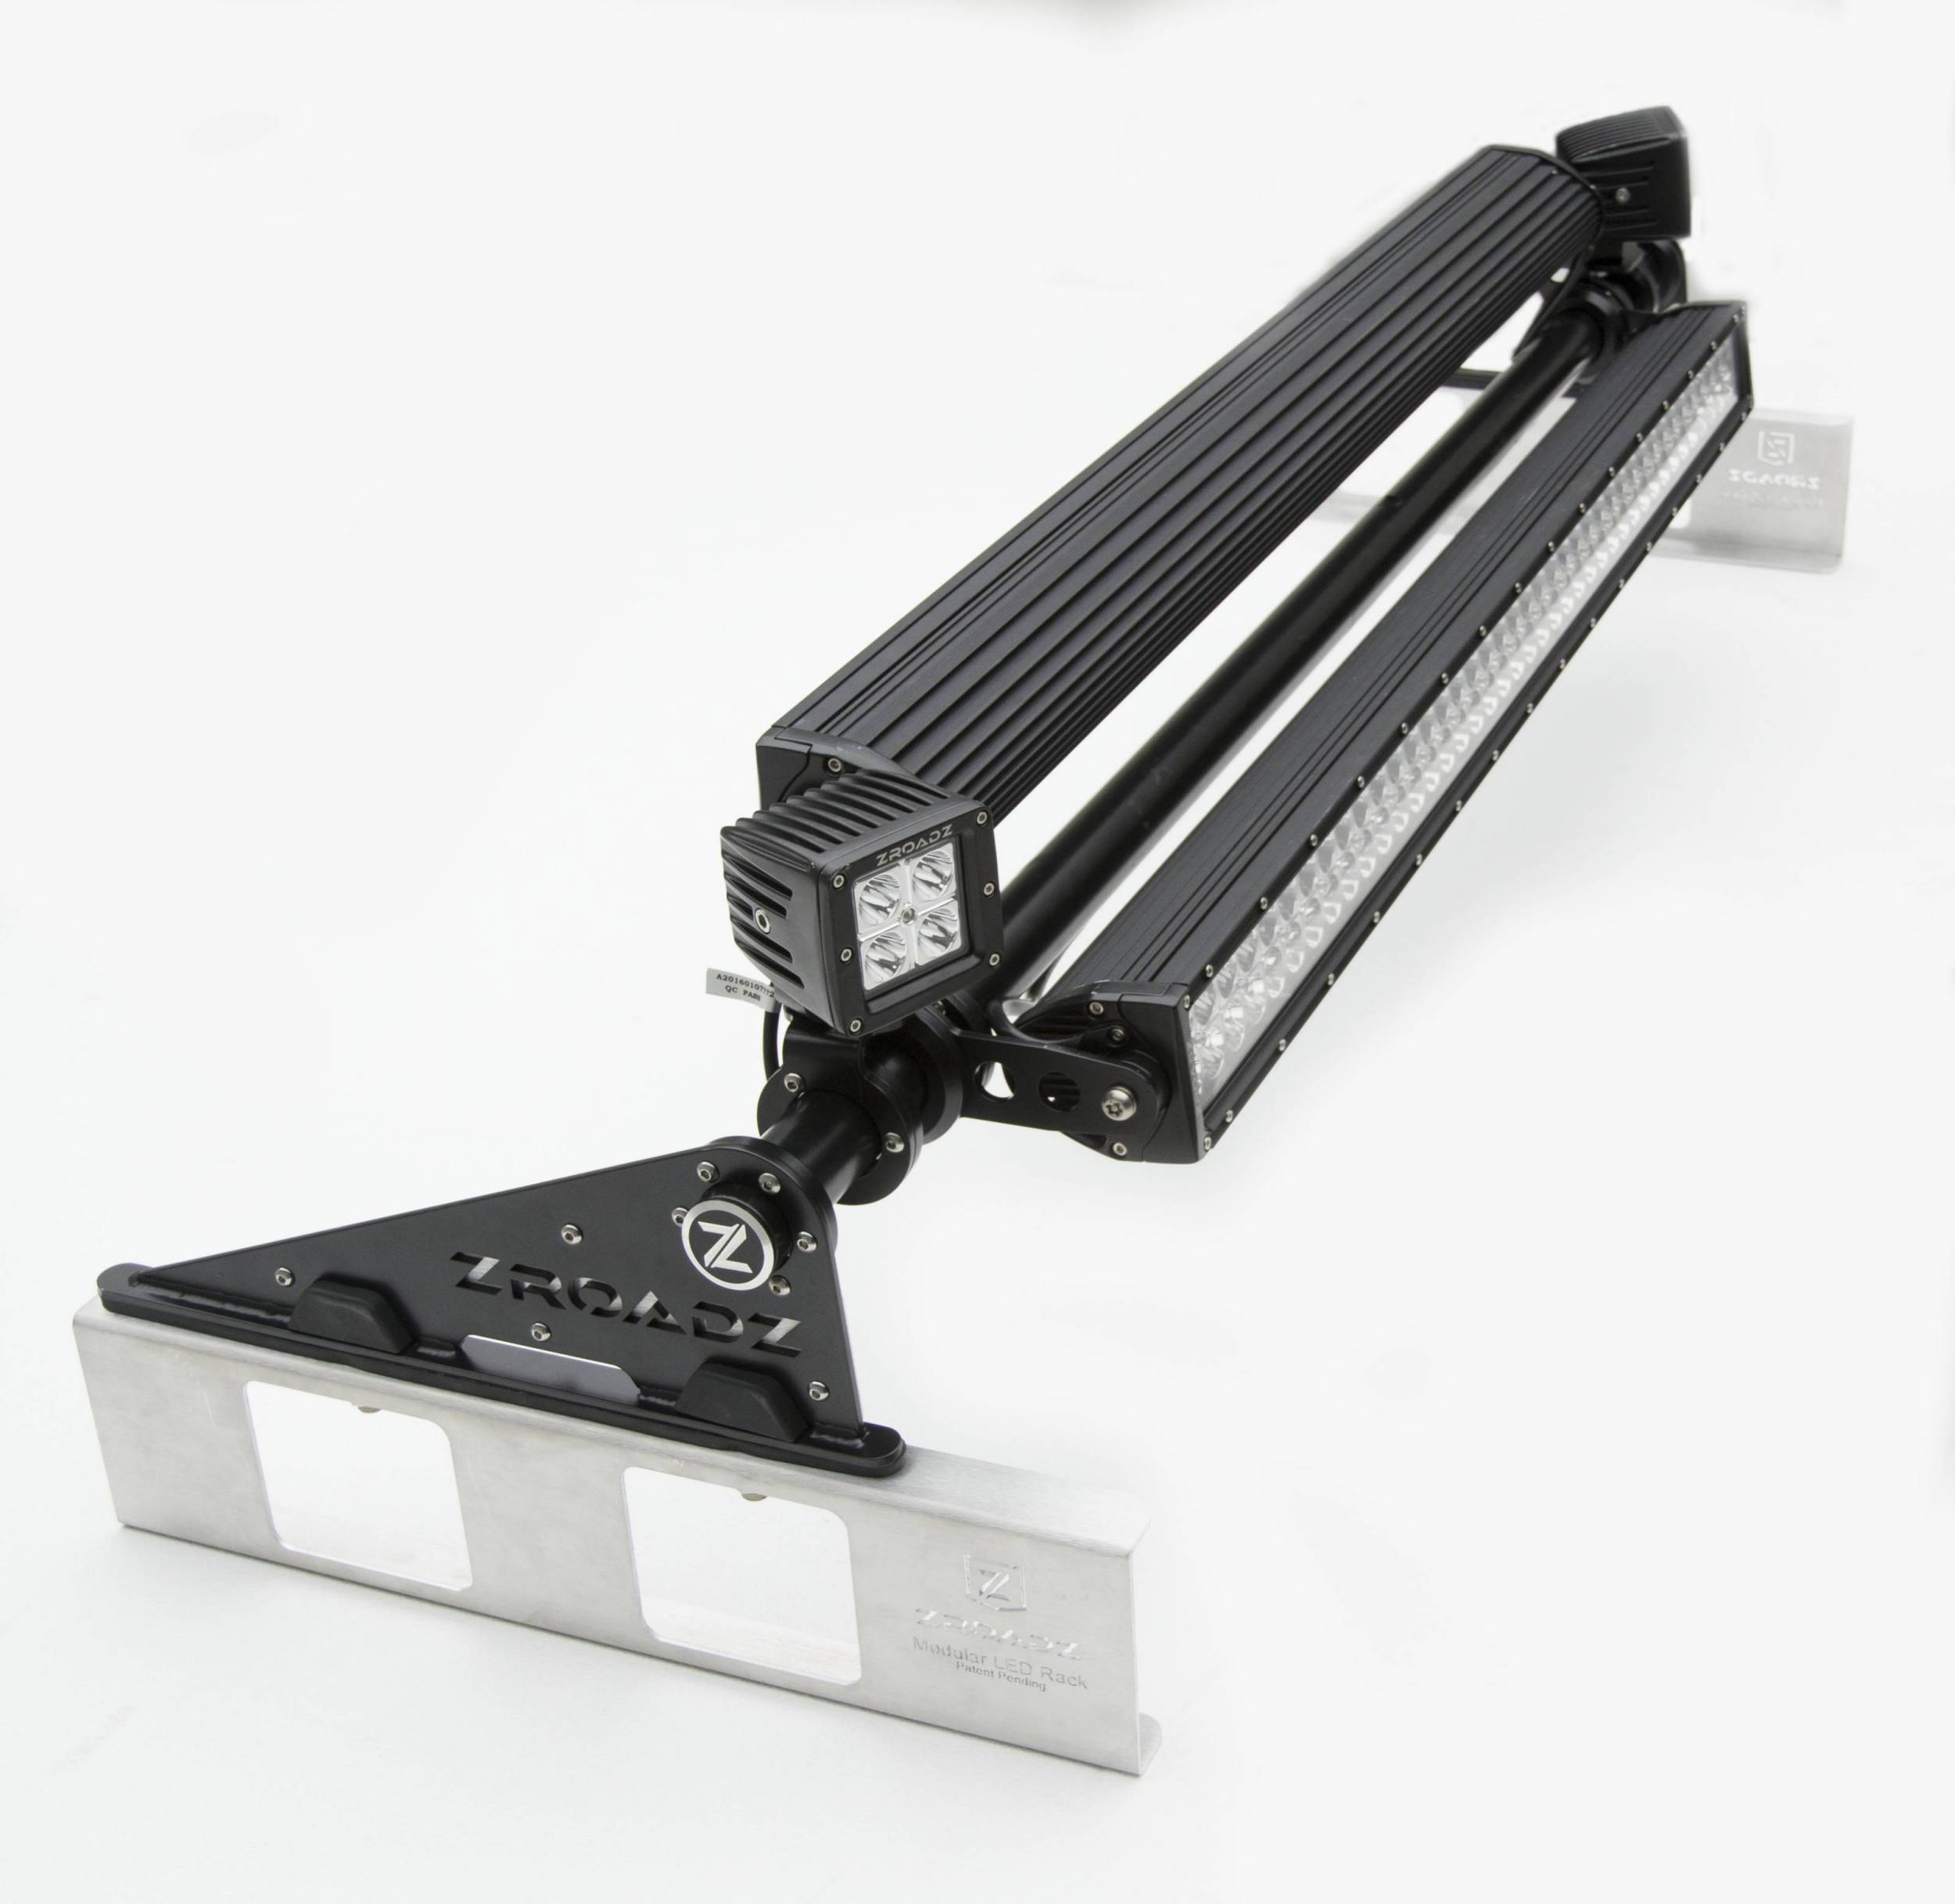 ZROADZ OFF ROAD PRODUCTS - Modular Rack LED Kit with (2) 40 Inch and (2) 3 Inch LED Pod Lights - PN #Z350050-KIT-A